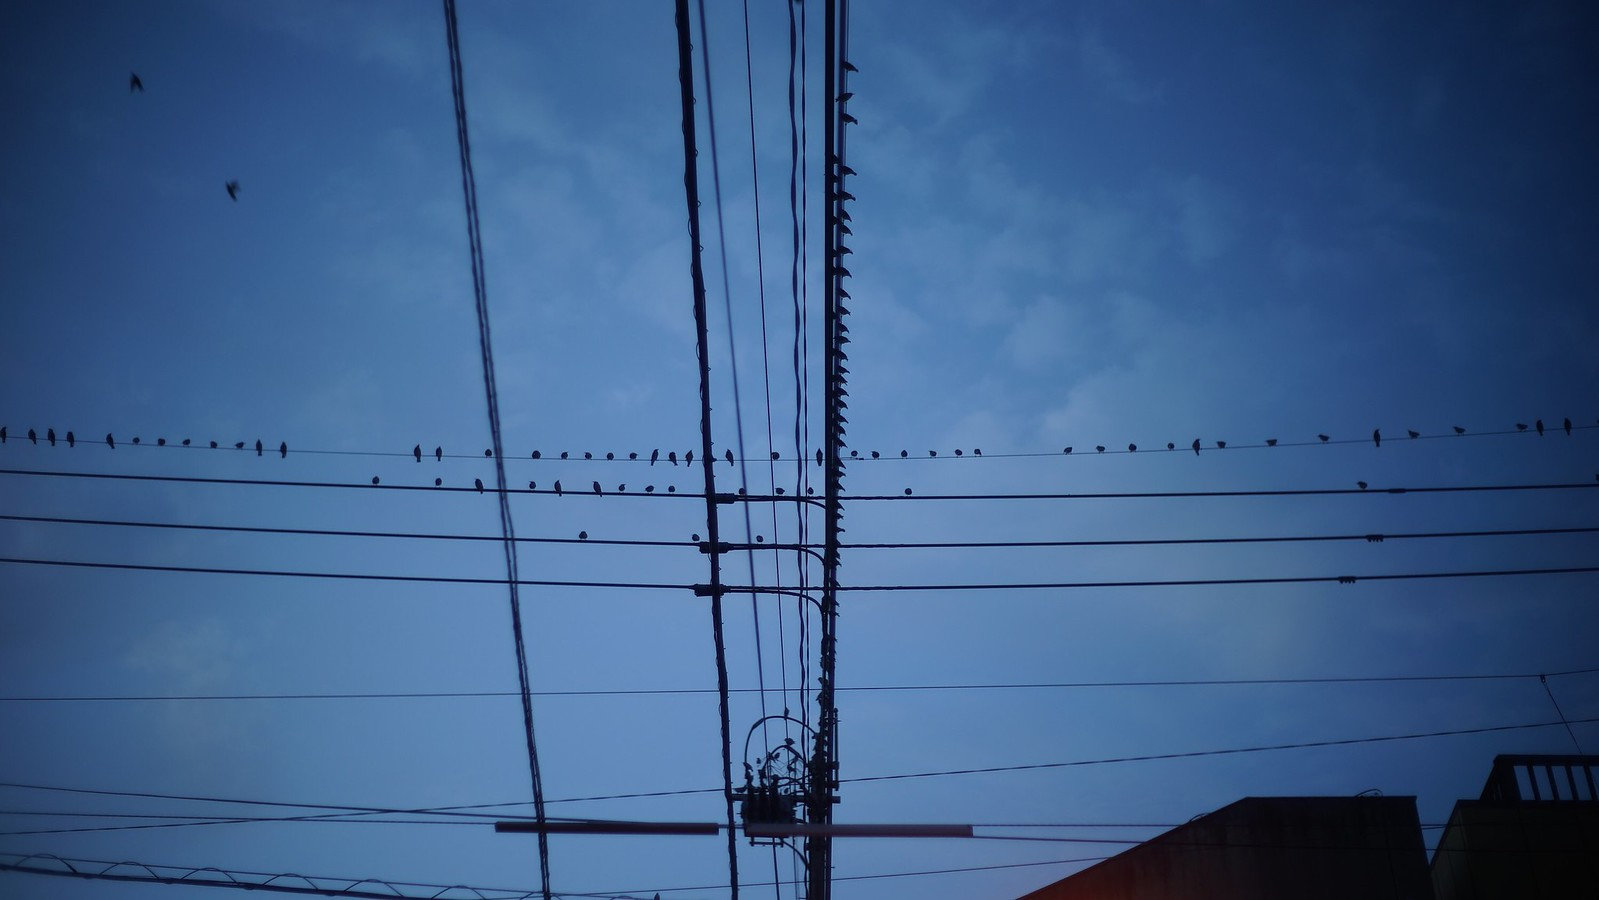 Birds on a wire. #japan15 #Kagoshima #SonyA7 #Voigtlander40mm #foto